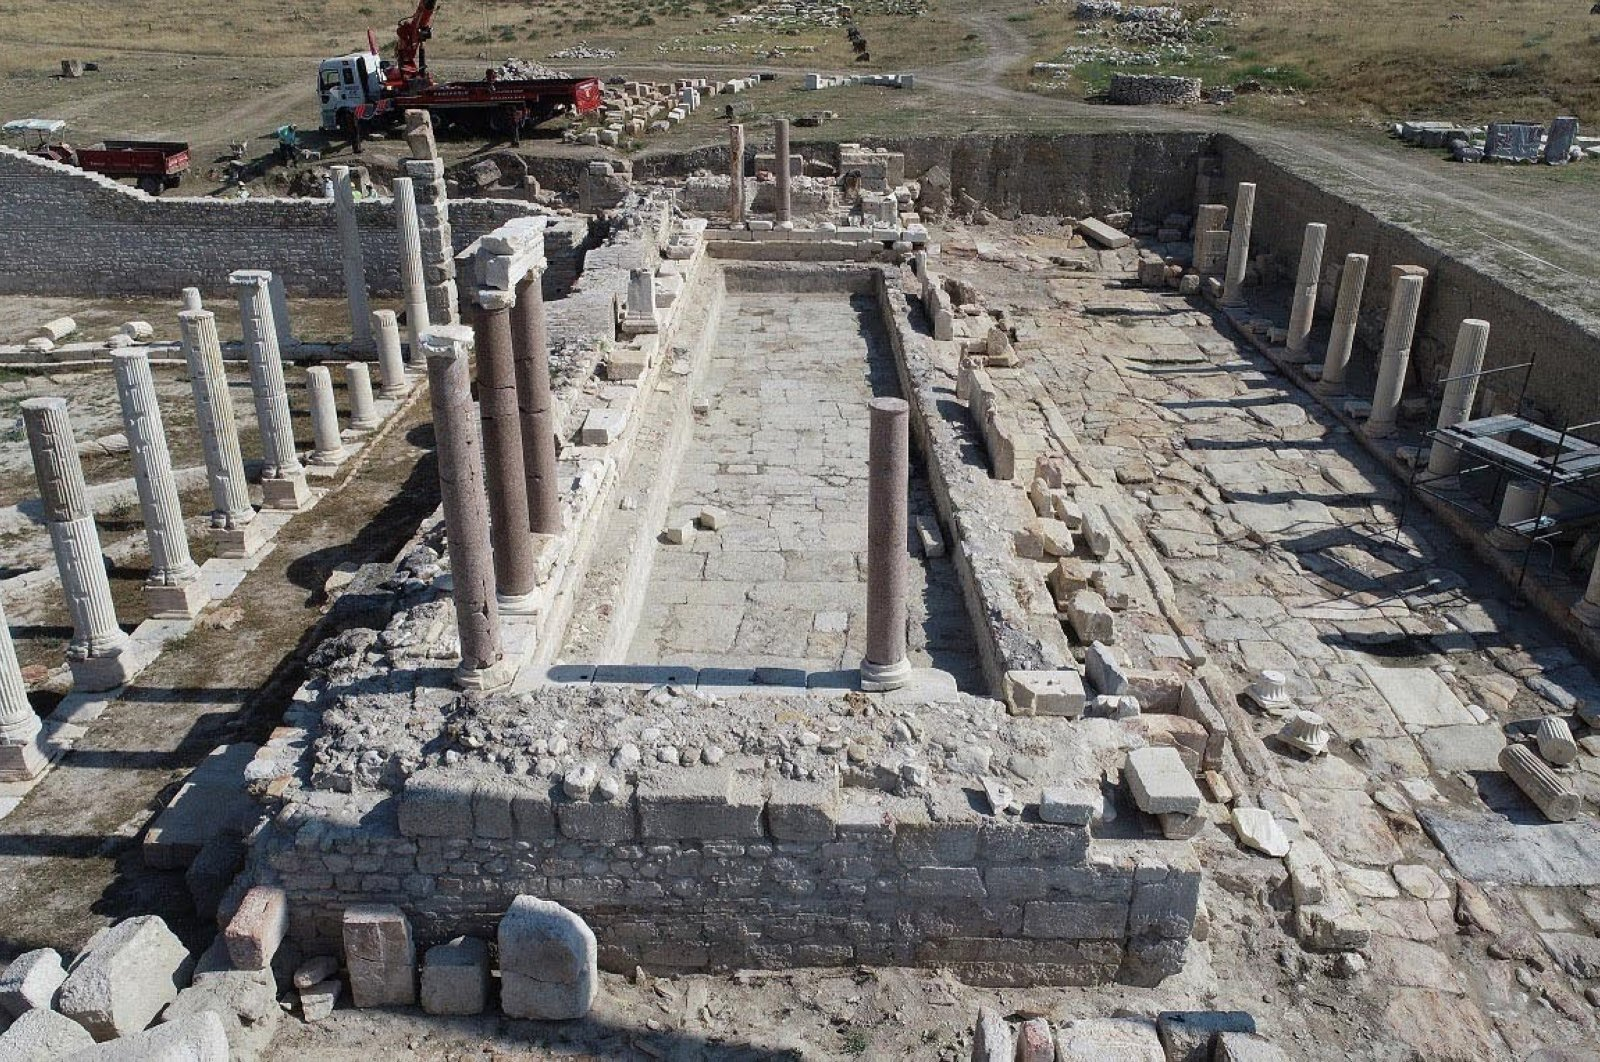 A general view of the monumental fountain, estimated to date back to the second century A.D, in the ancient city of Tripolis, Denizli, western Turkey, July 24, 2020. (DHA Photo)